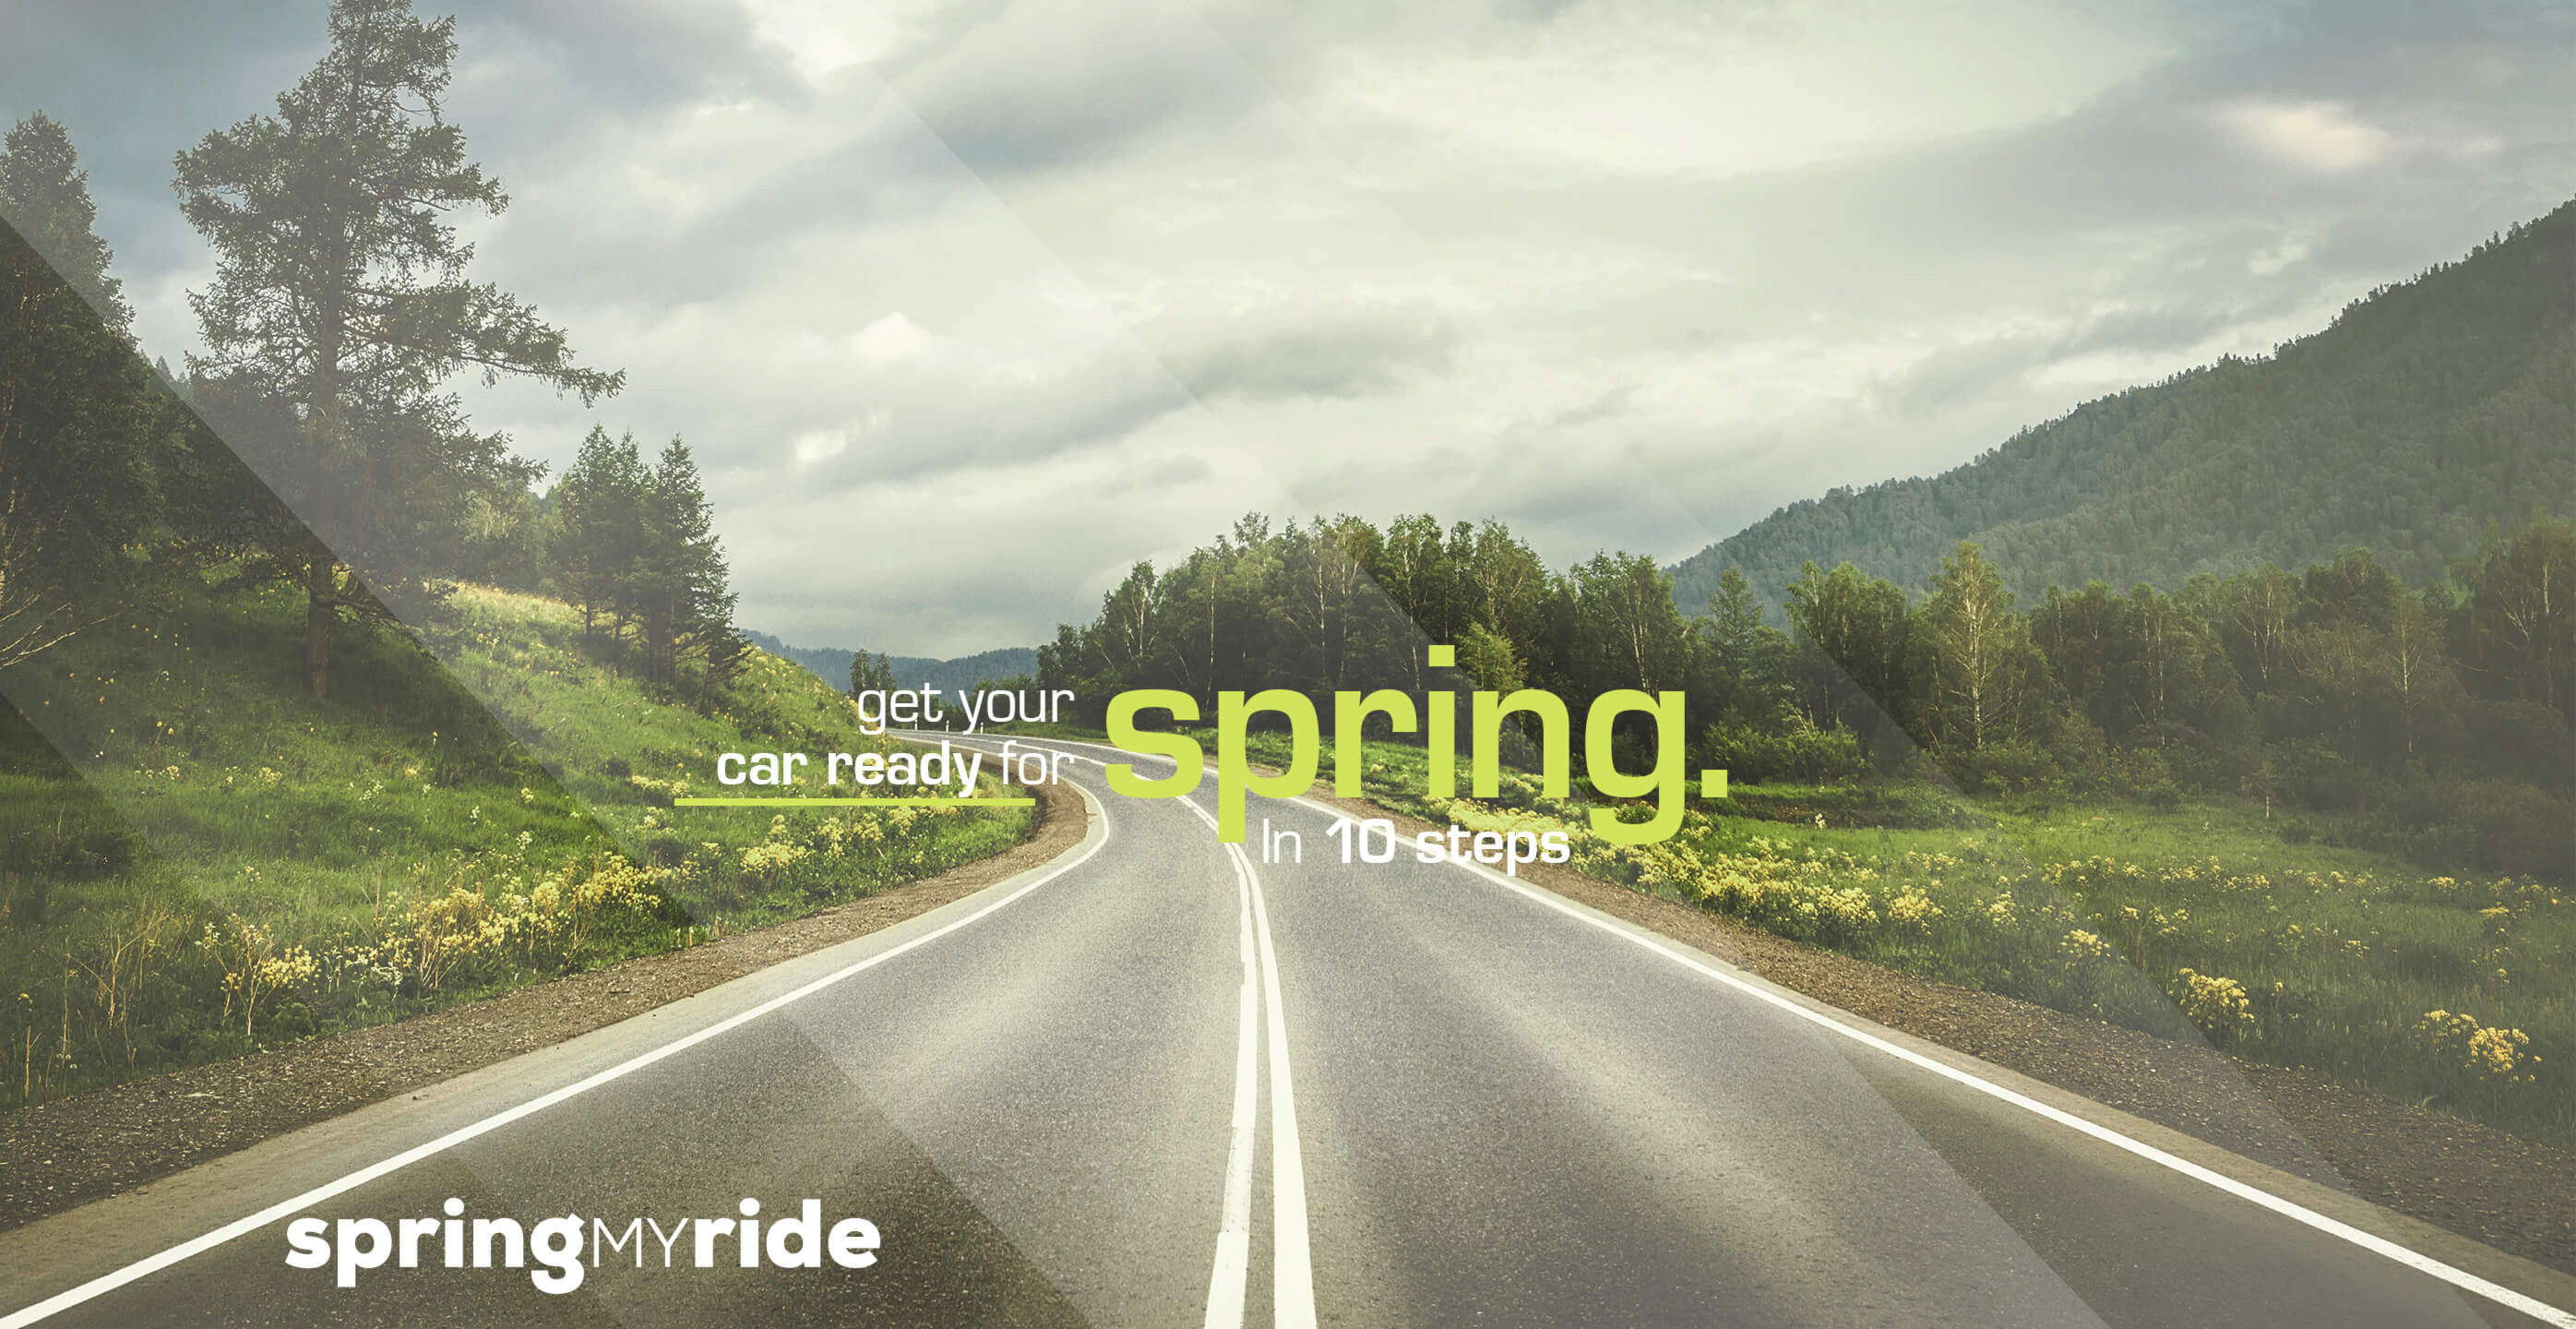 AEZ Spring my ride